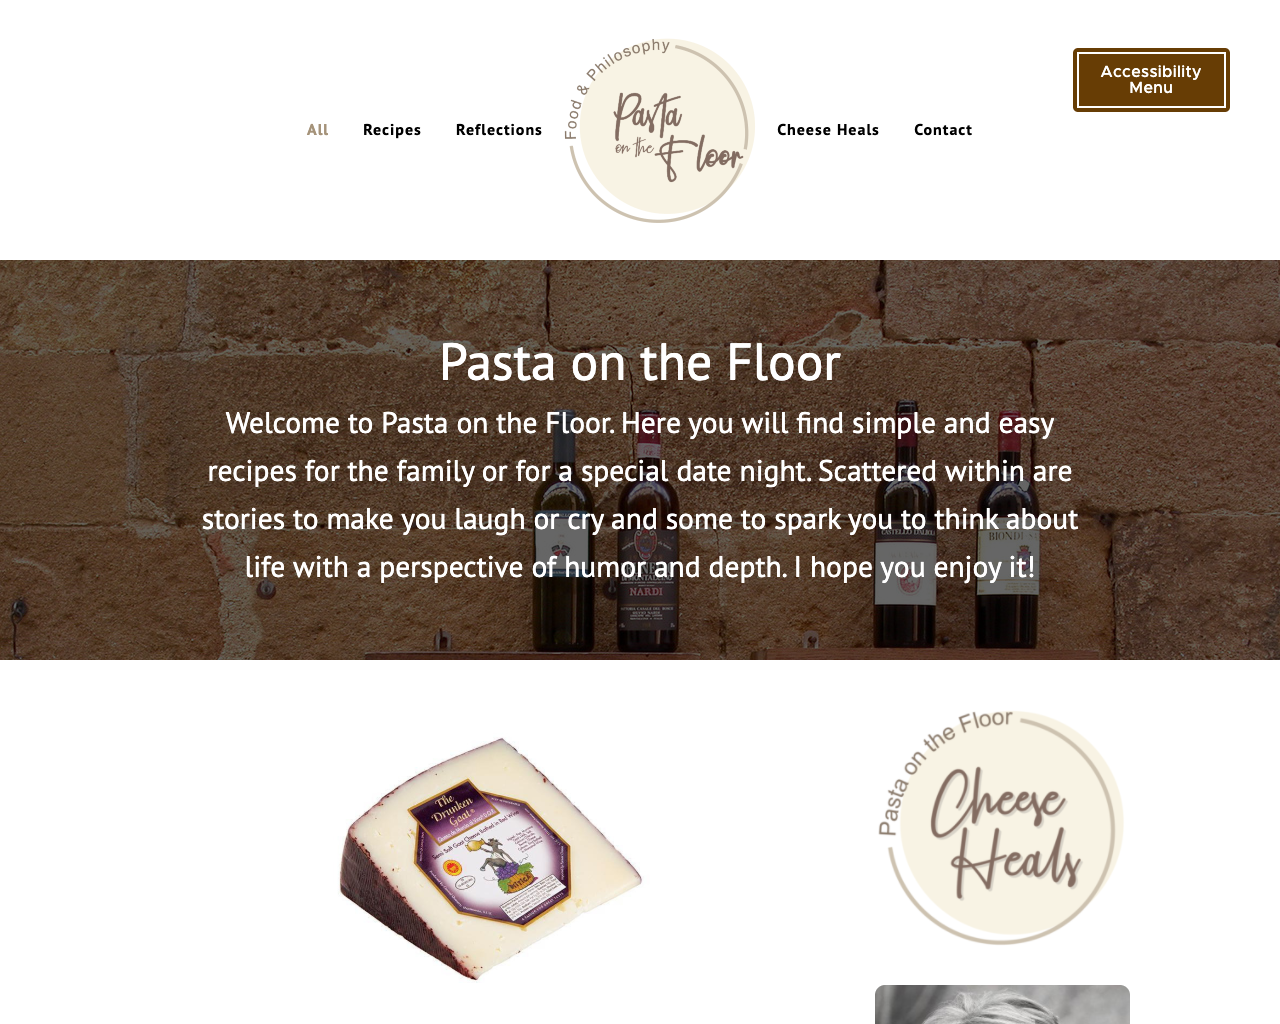 Pasta on the Floor - Web design, content creation, blog writing services.